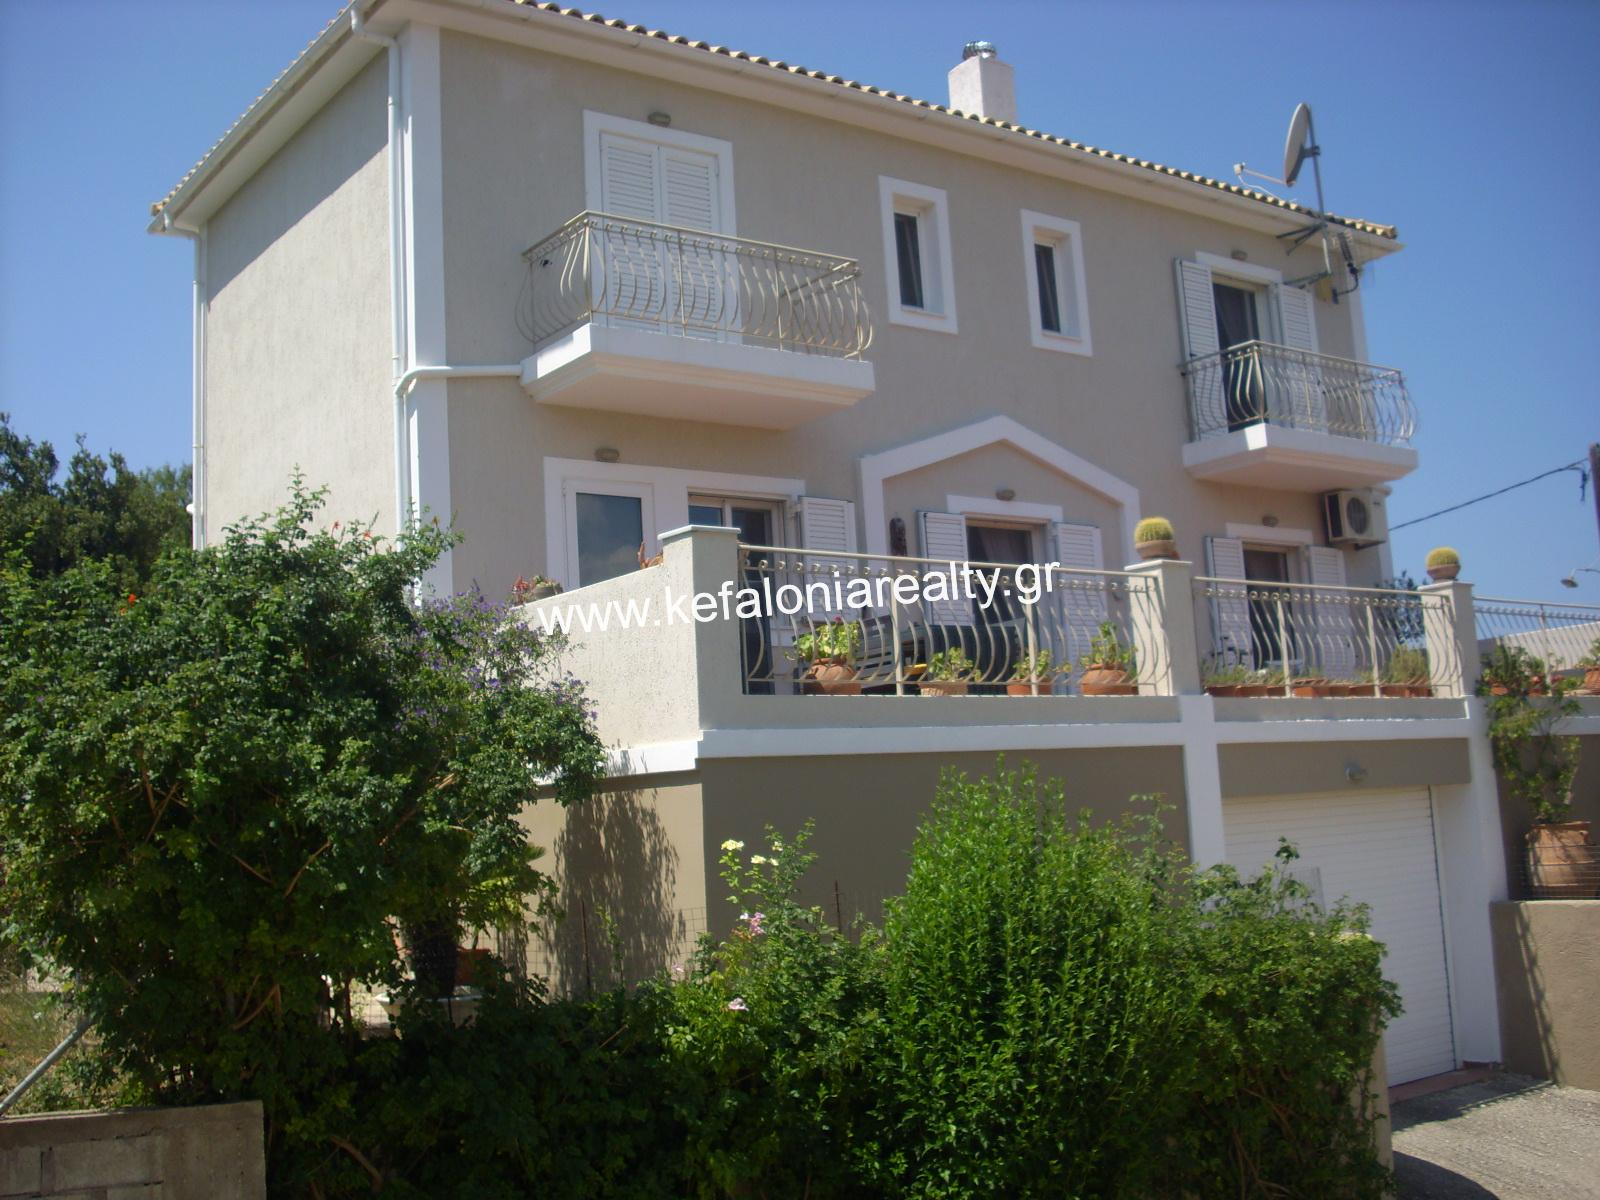 HOUSE FOR SALE IN KORIANA VILLAGE